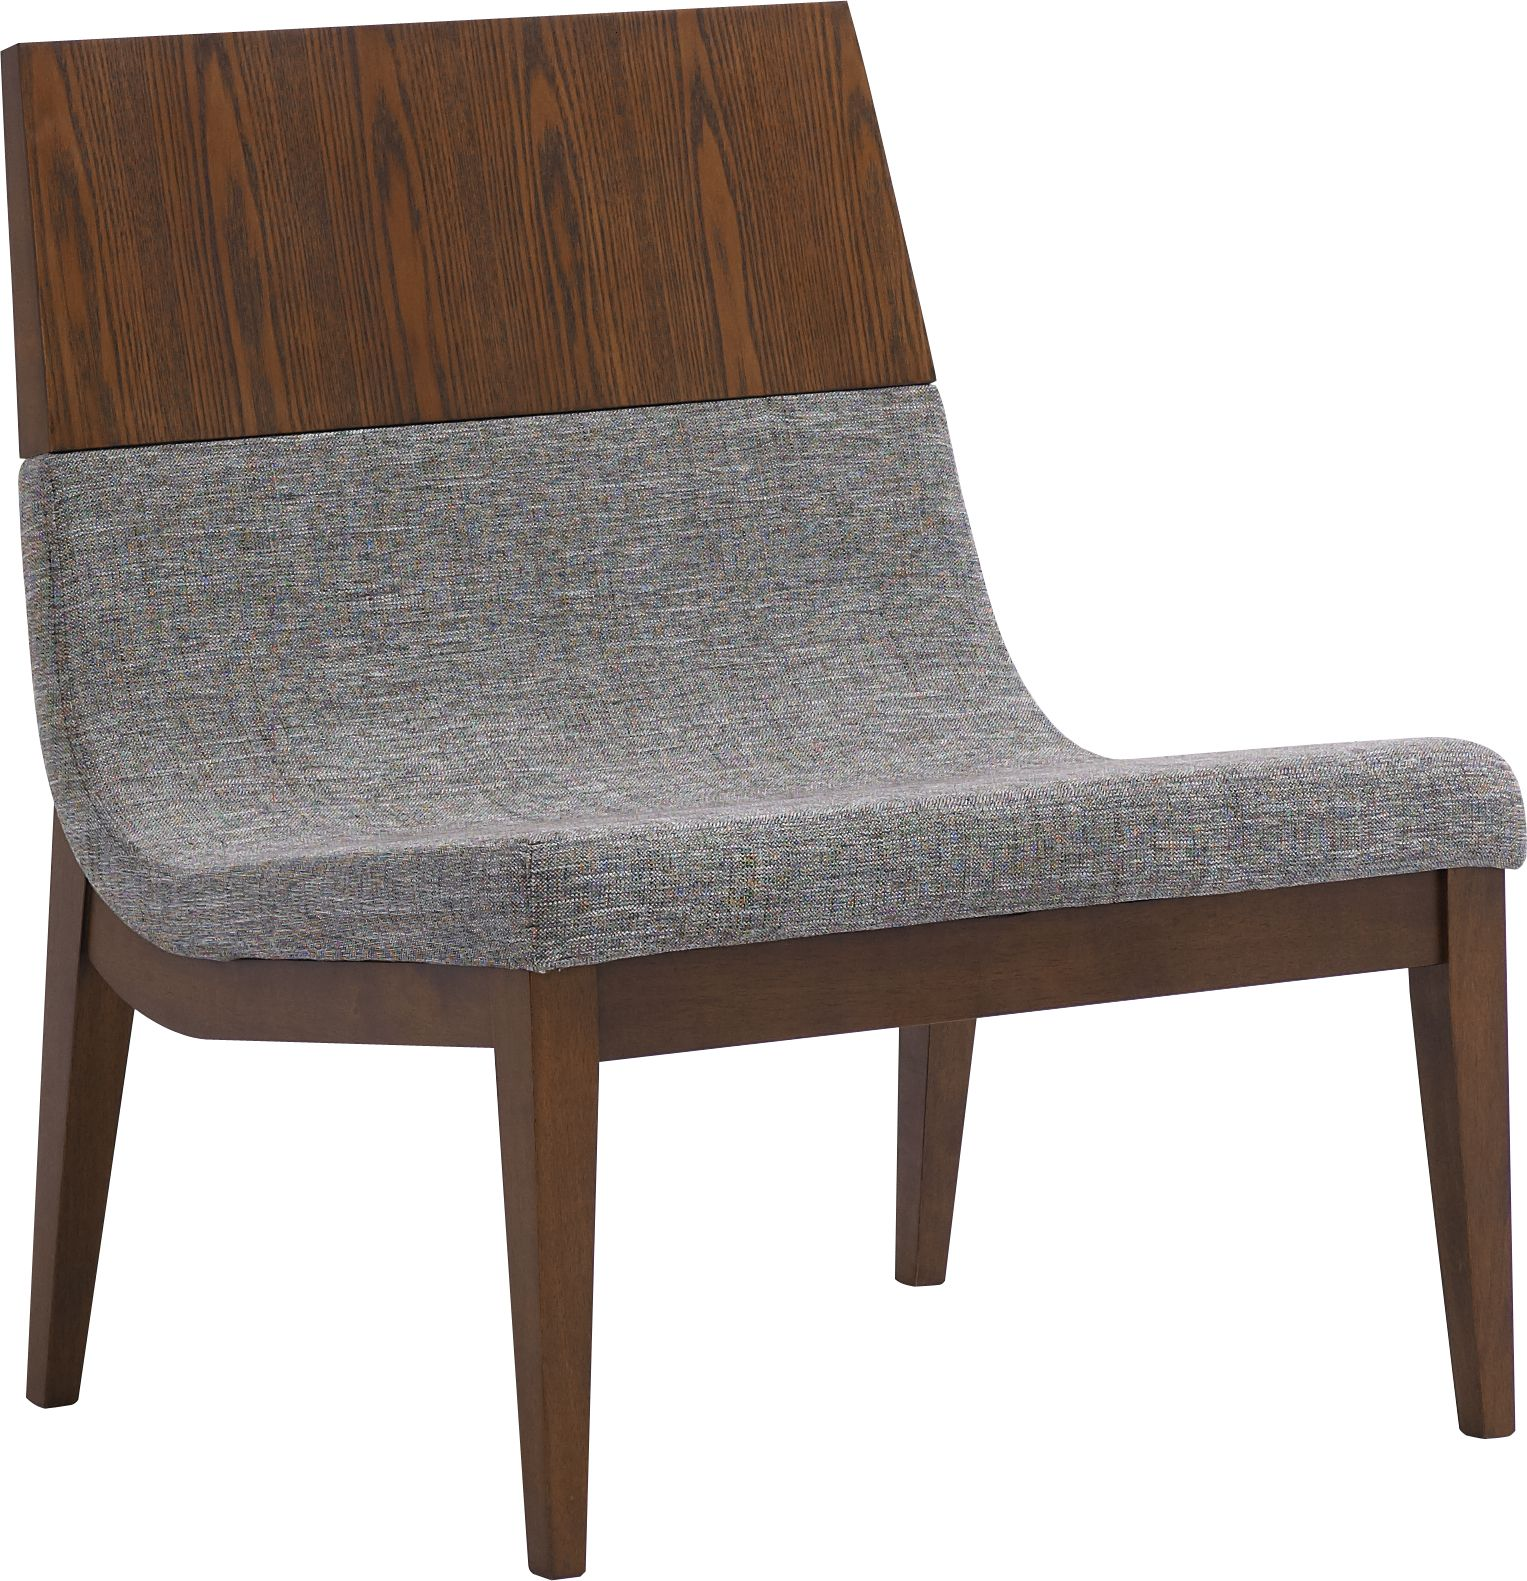 Comfort Chair Price Lavender Lounge Chair Fully Cushioned To Ensure Comfortable